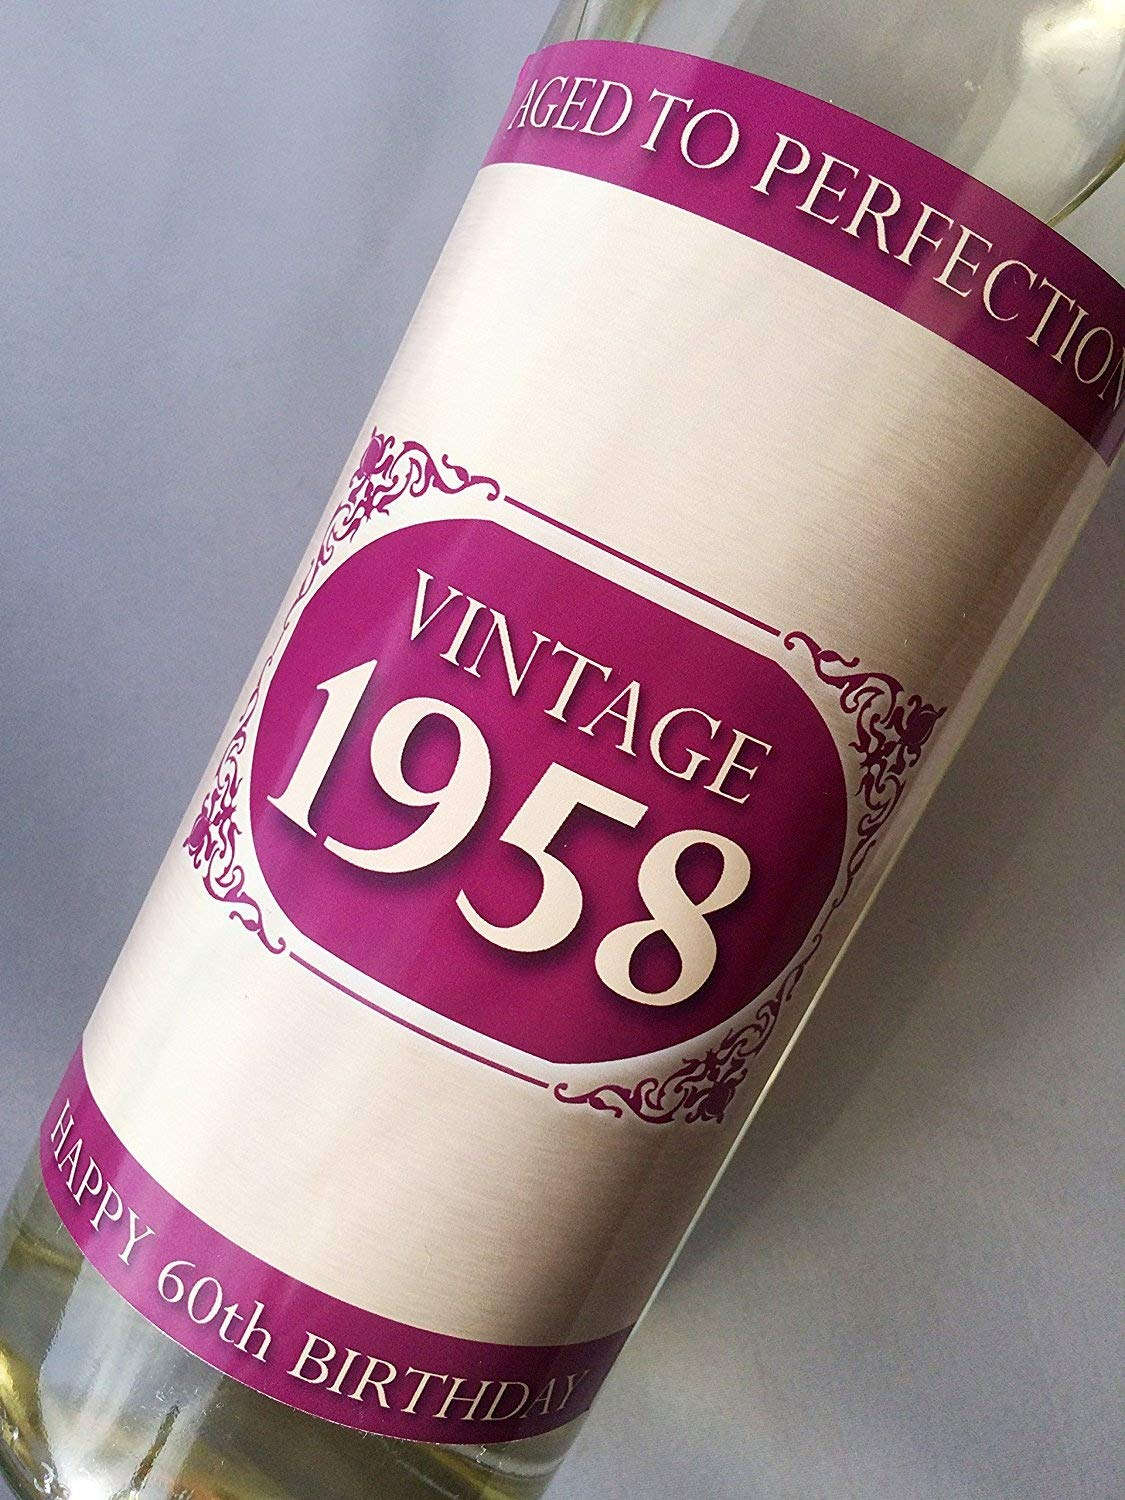 1958 Vintage Pink Happy 60th Birthday 2018 Wine Bottle Label Gift for Women and Men Purple Products